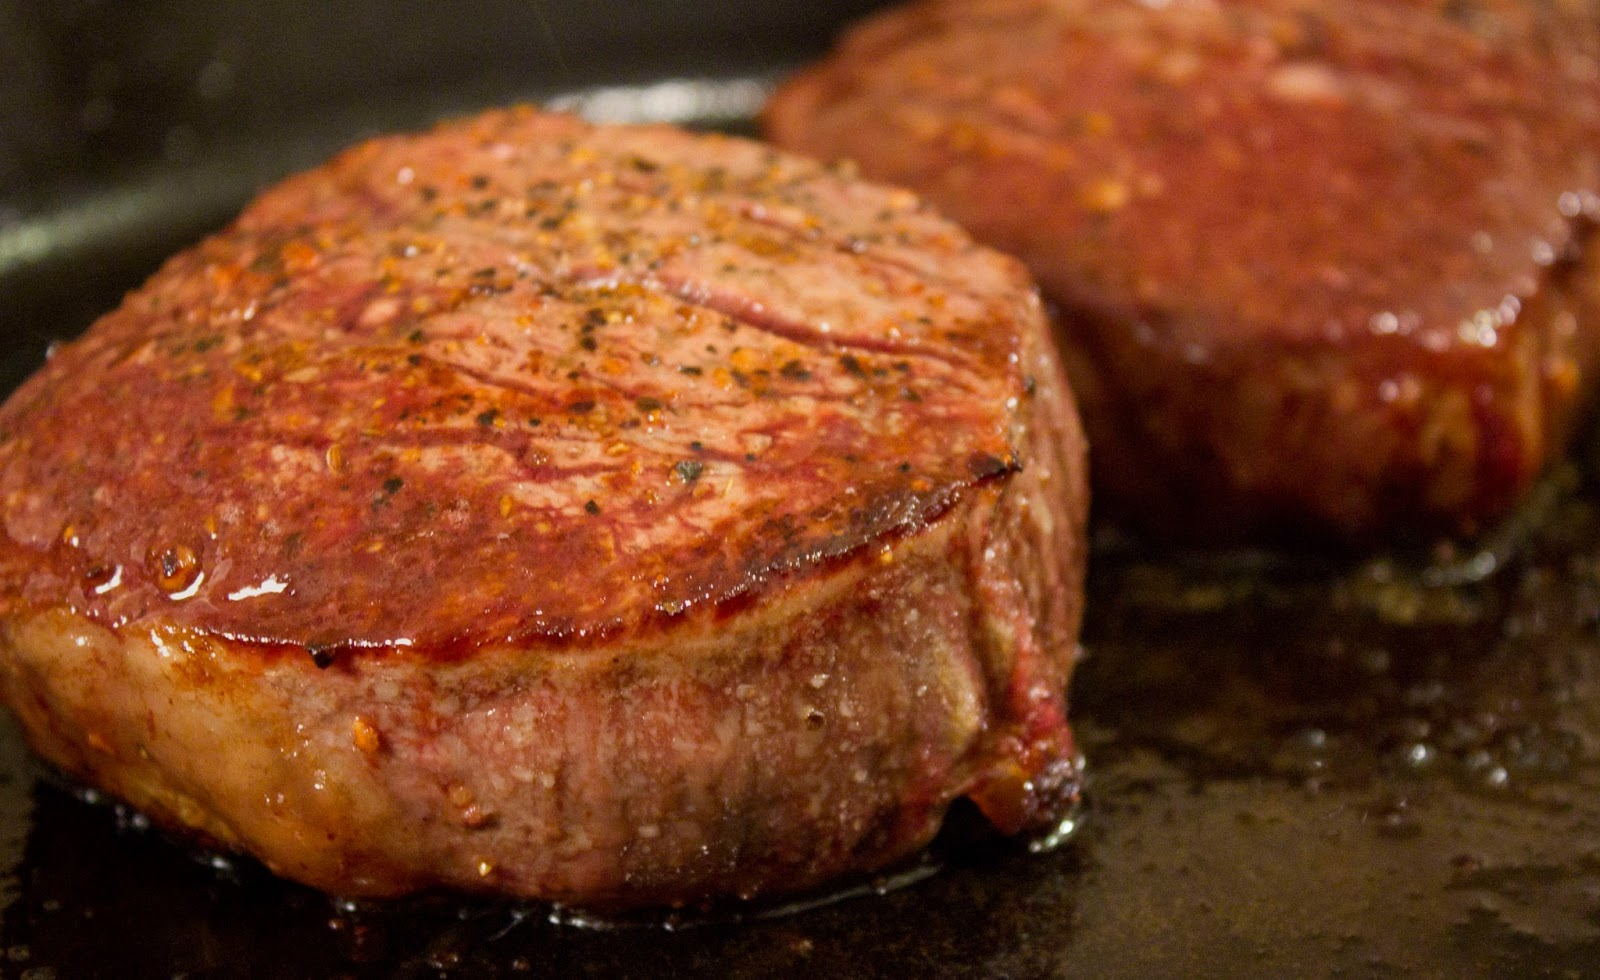 Munched: Pan Seared Steak